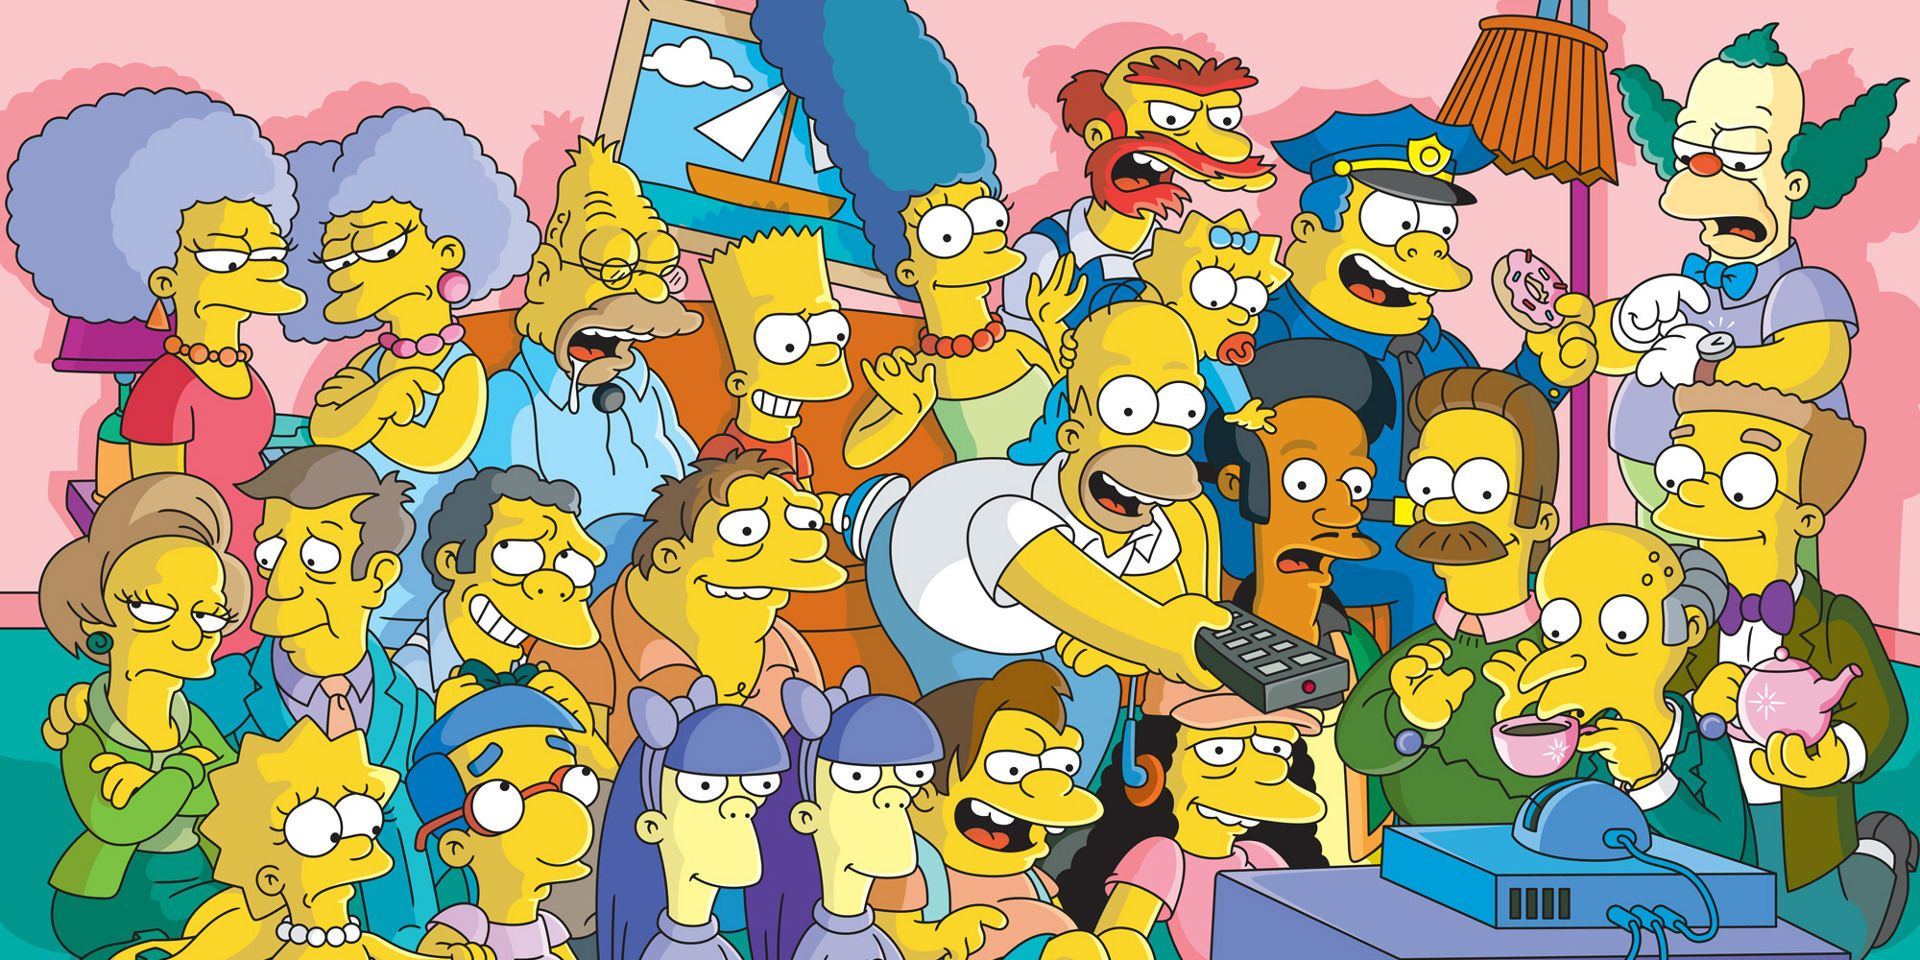 The Simpsons Renewed For Seasons 31 & 32 At FOX